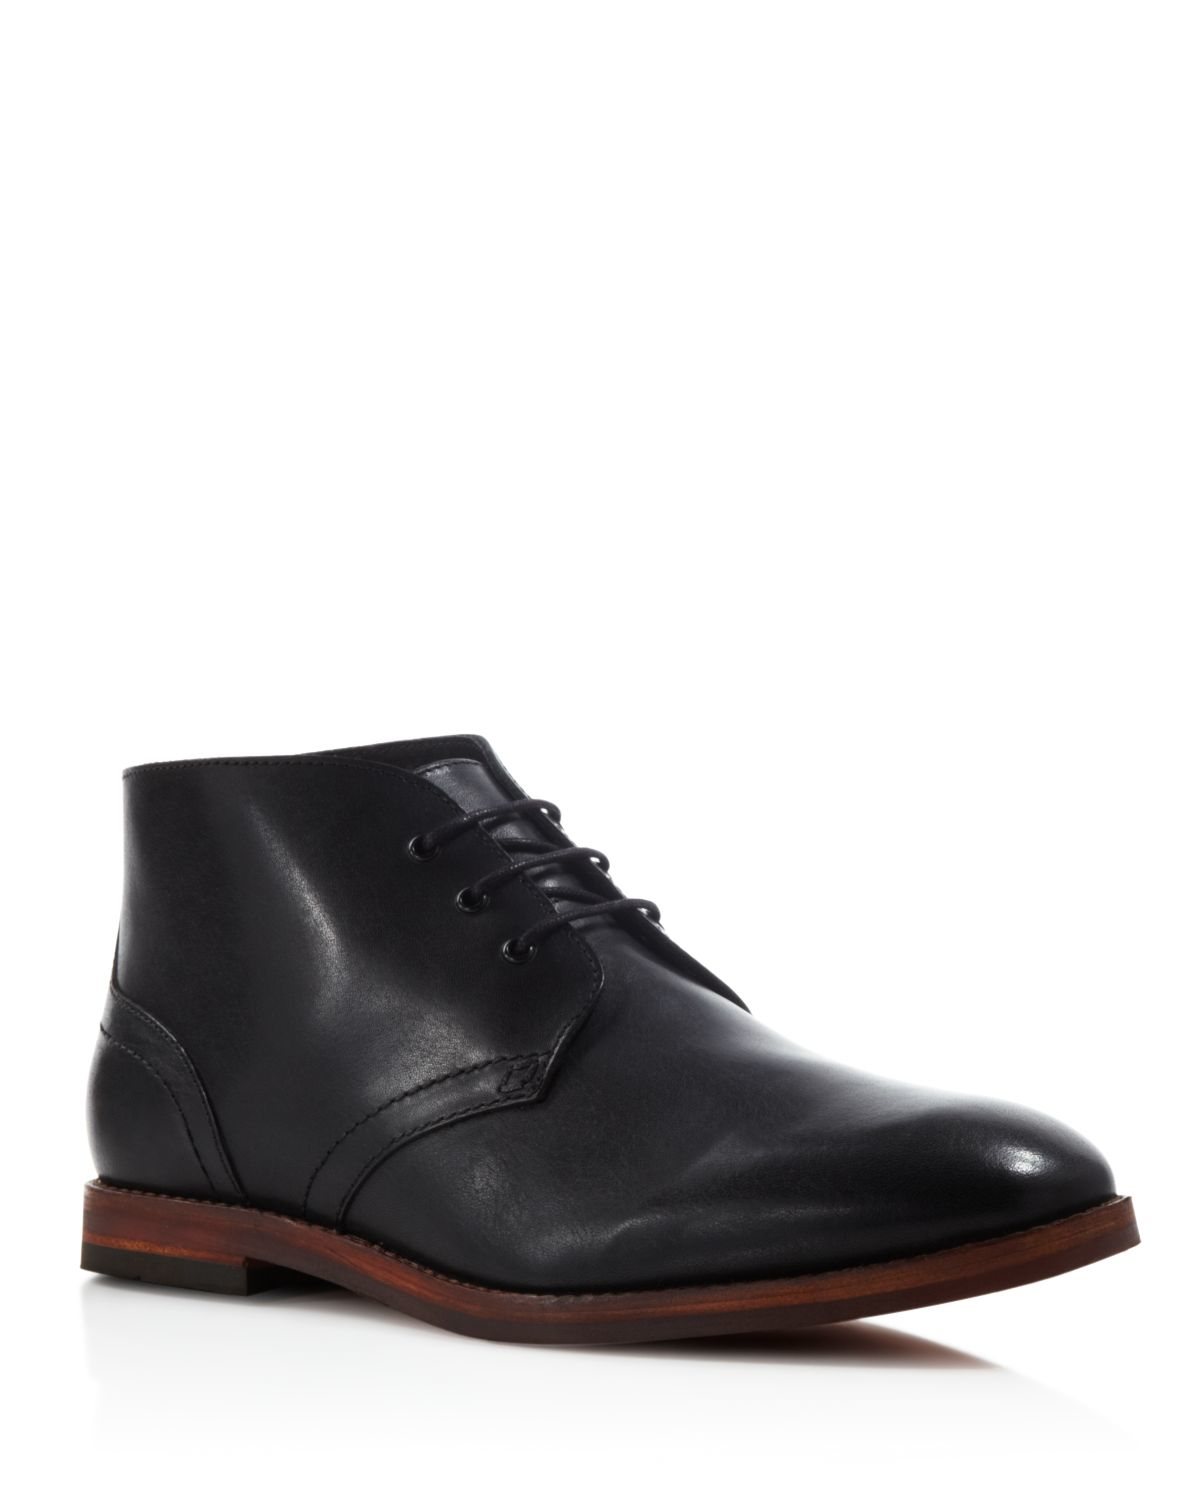 h by hudson houghton chukka boots in black for lyst